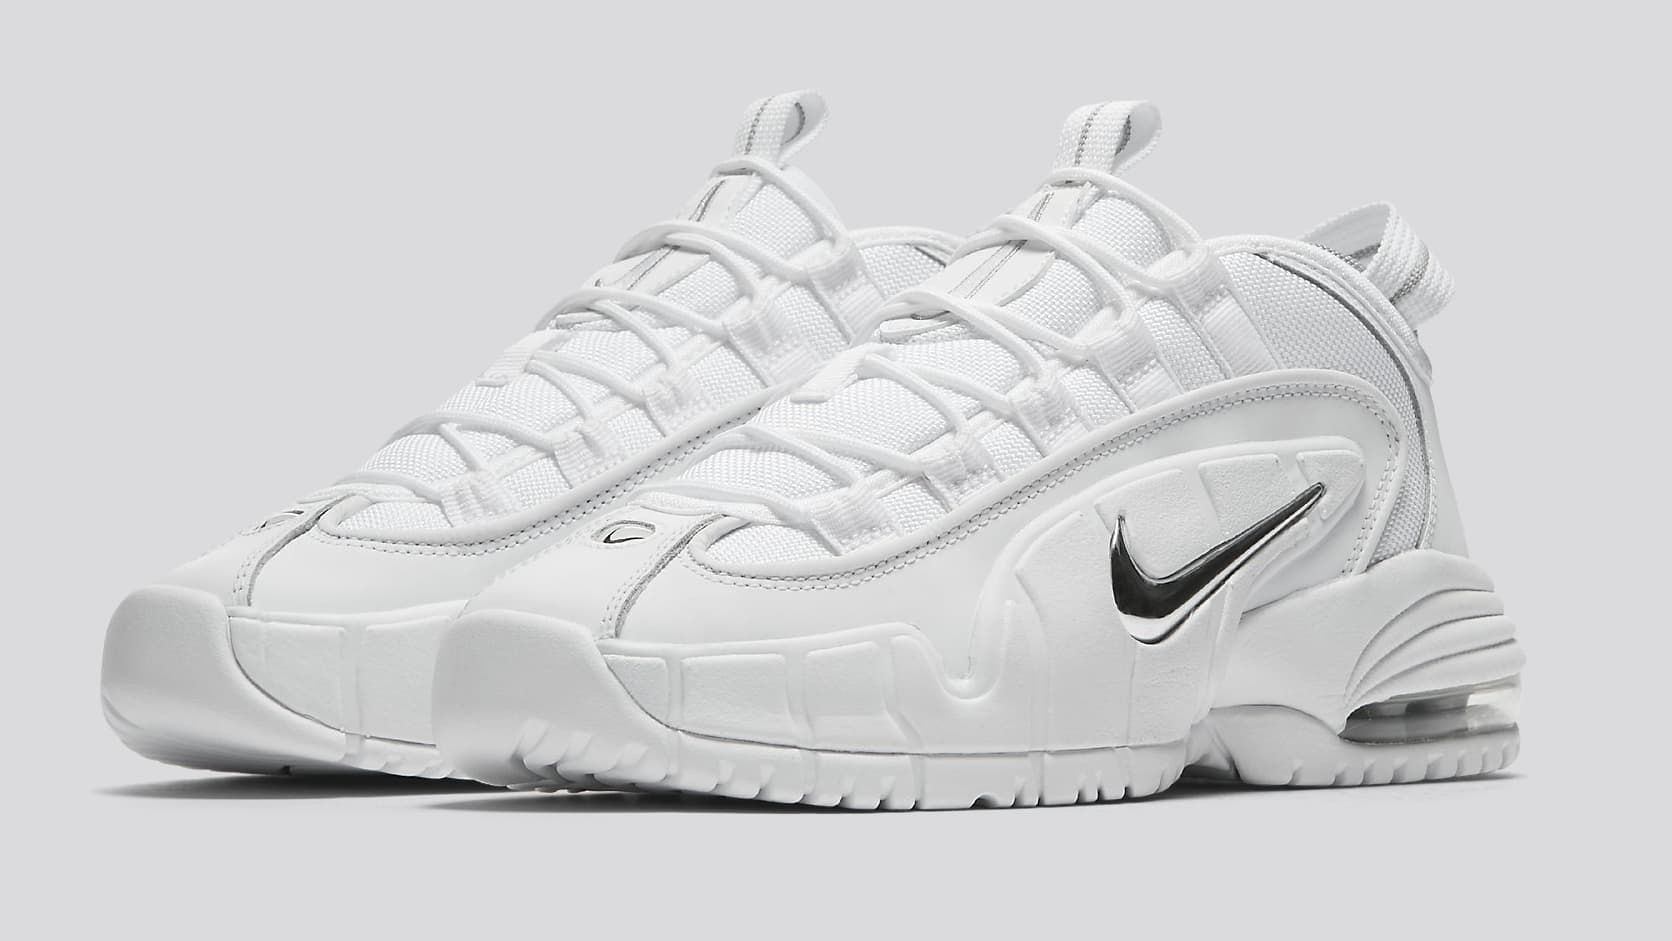 d6f754baa0bdf5 Nike Air Max Penny 1 White Metallic - White Metallic Silver